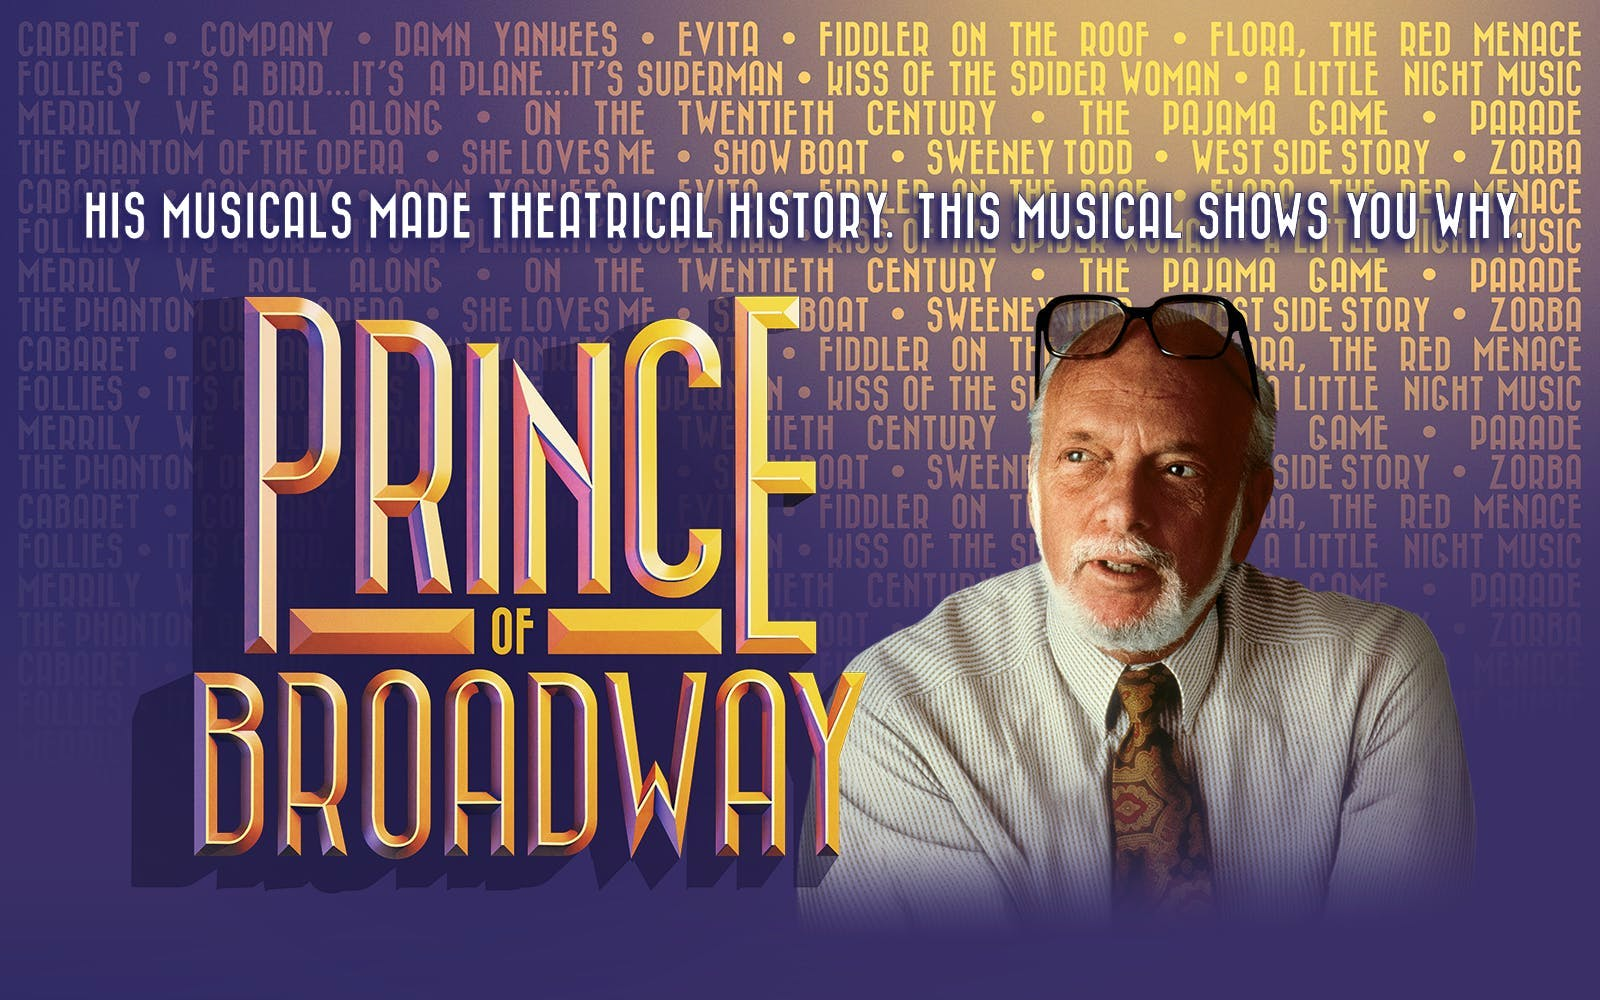 prince of broadway-2